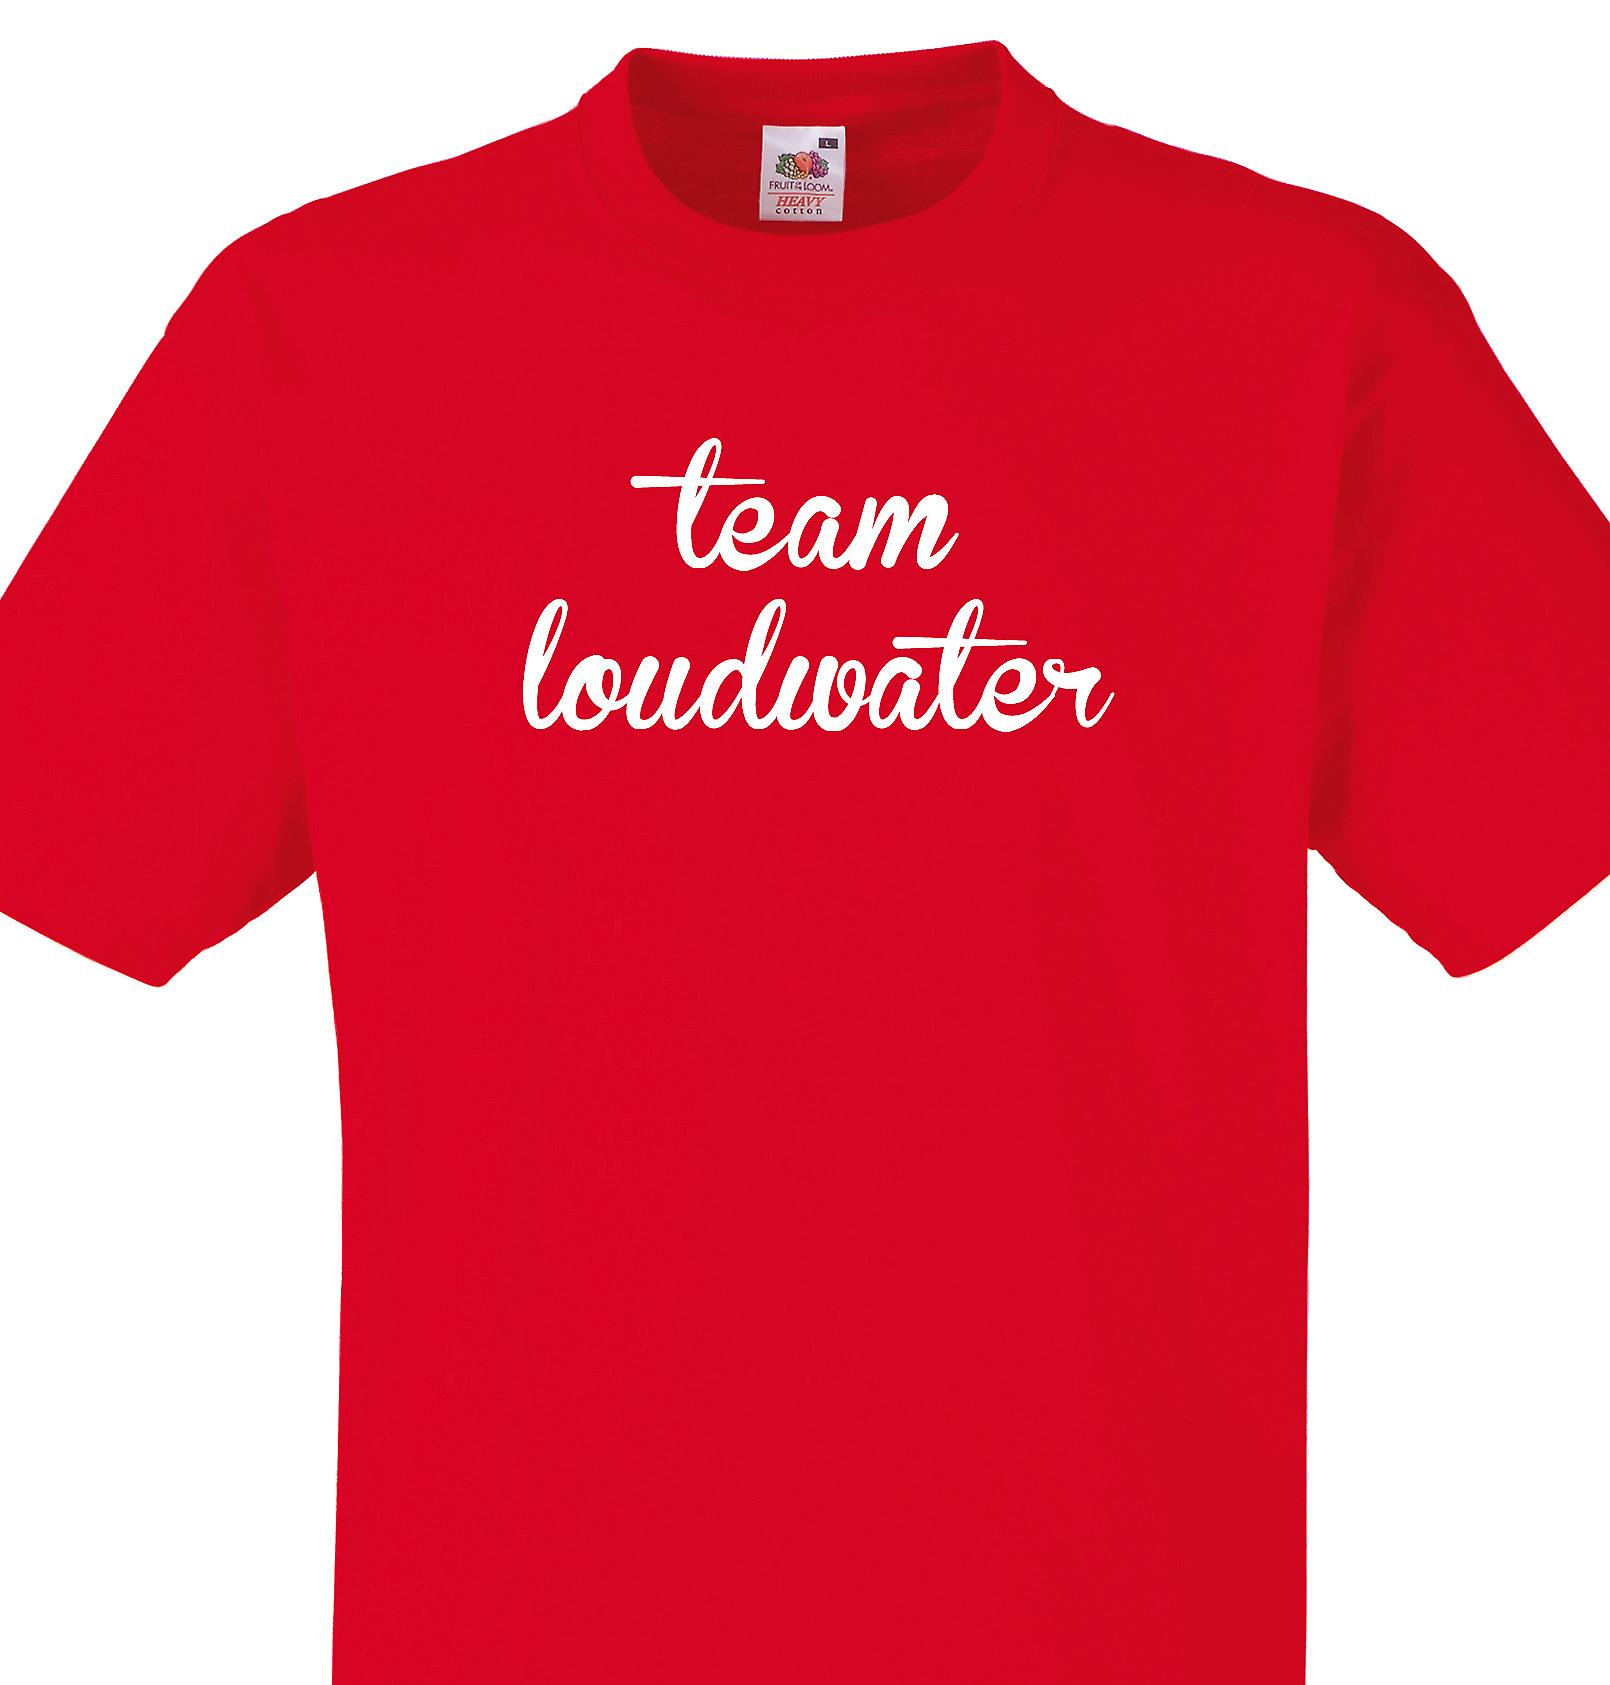 Team Loudwater Red T shirt